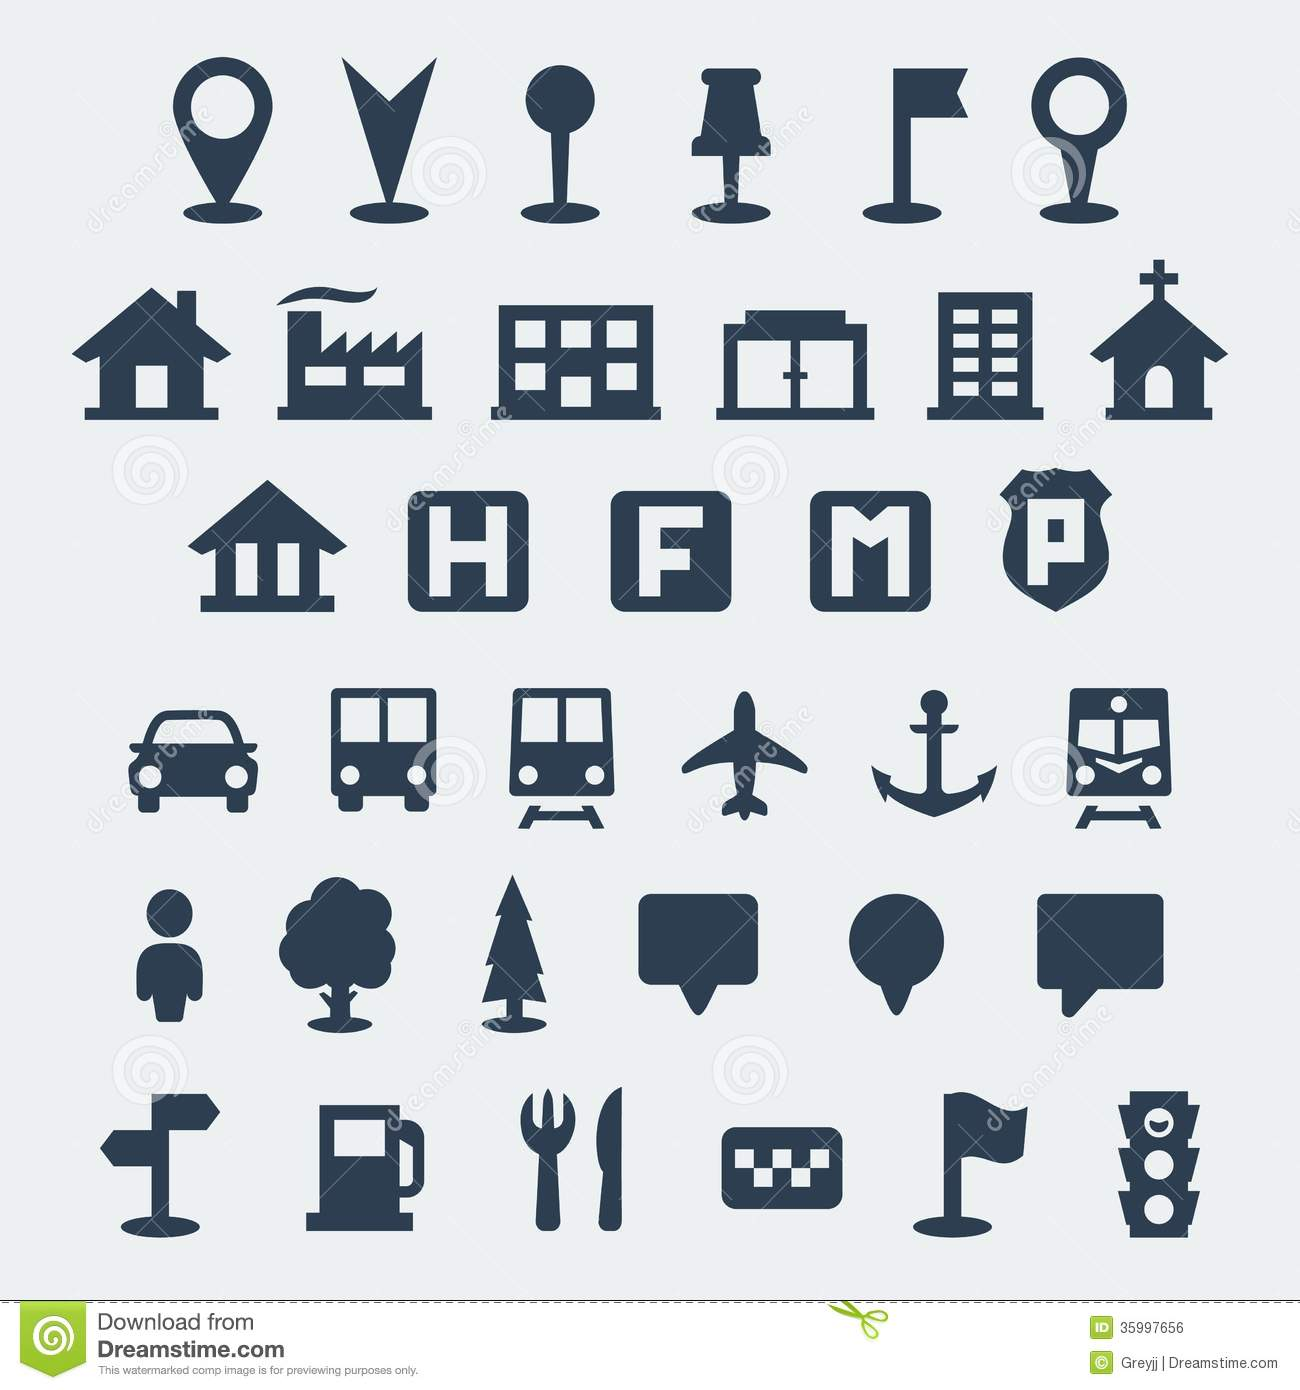 Vector Map Icons Set Royalty Free Stock Image - Image: 35997656